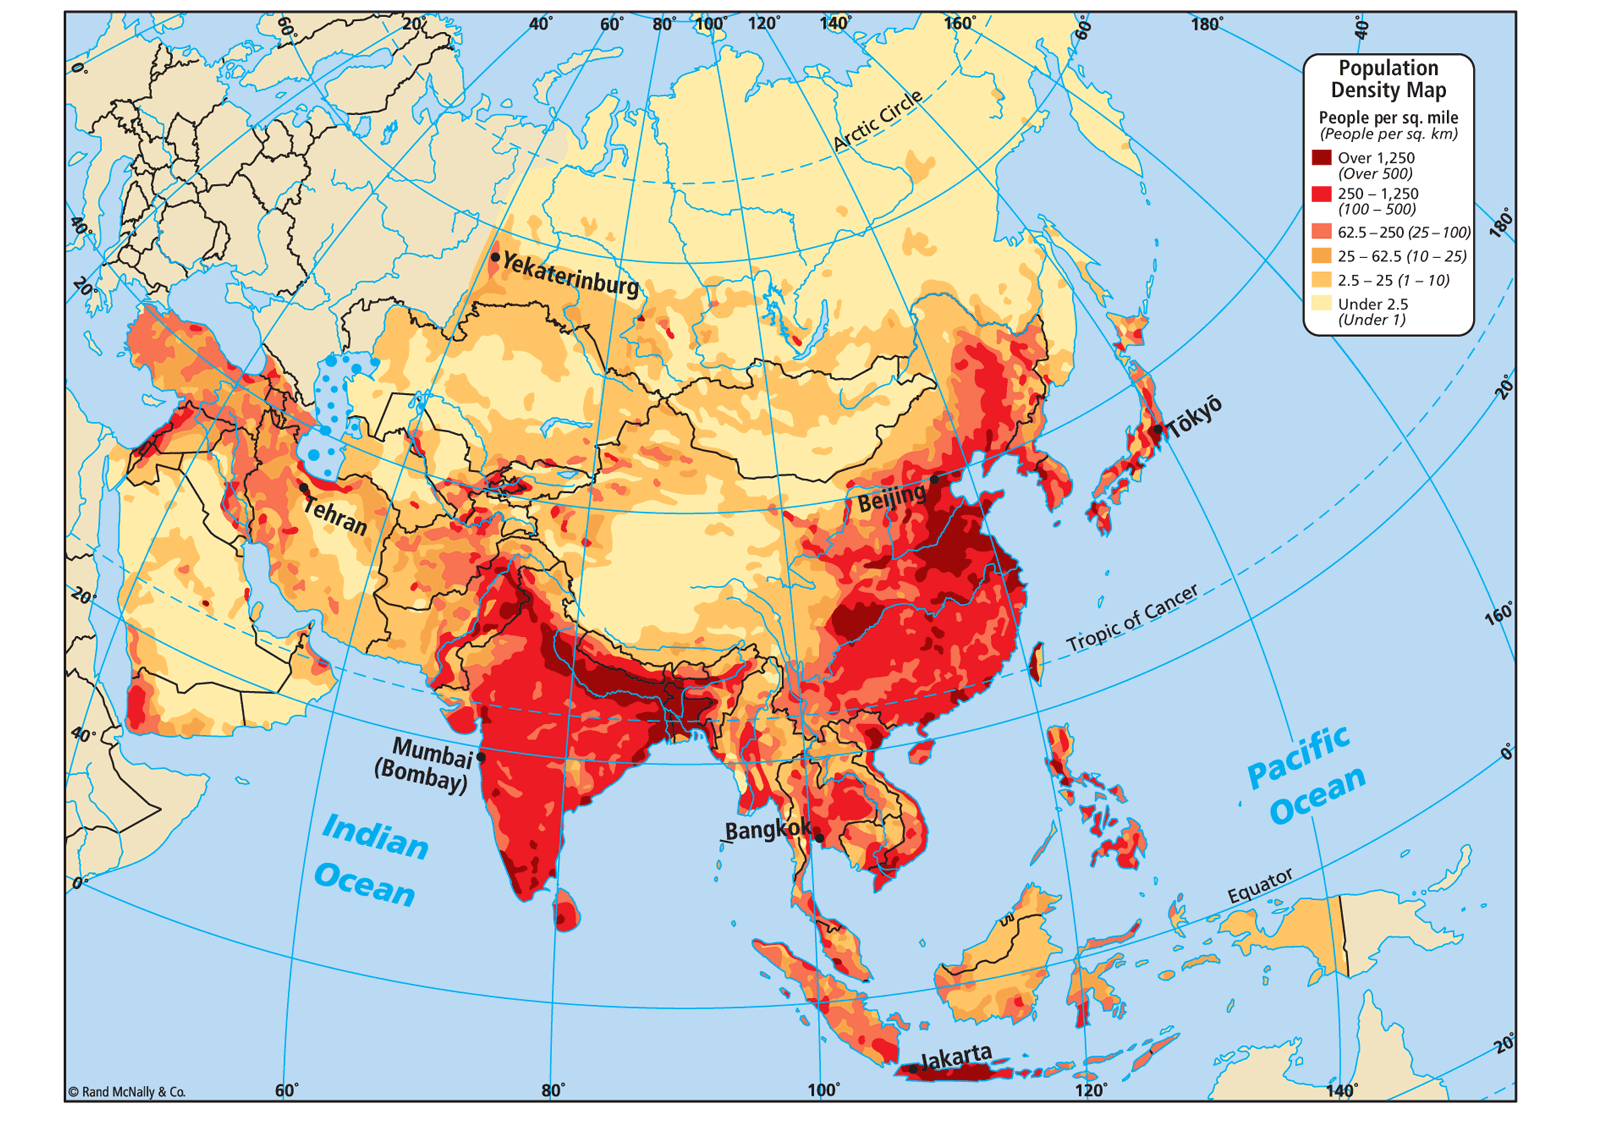 Climate Maps Of Asia Google Search Maps Pinterest - Google map us population density map by county